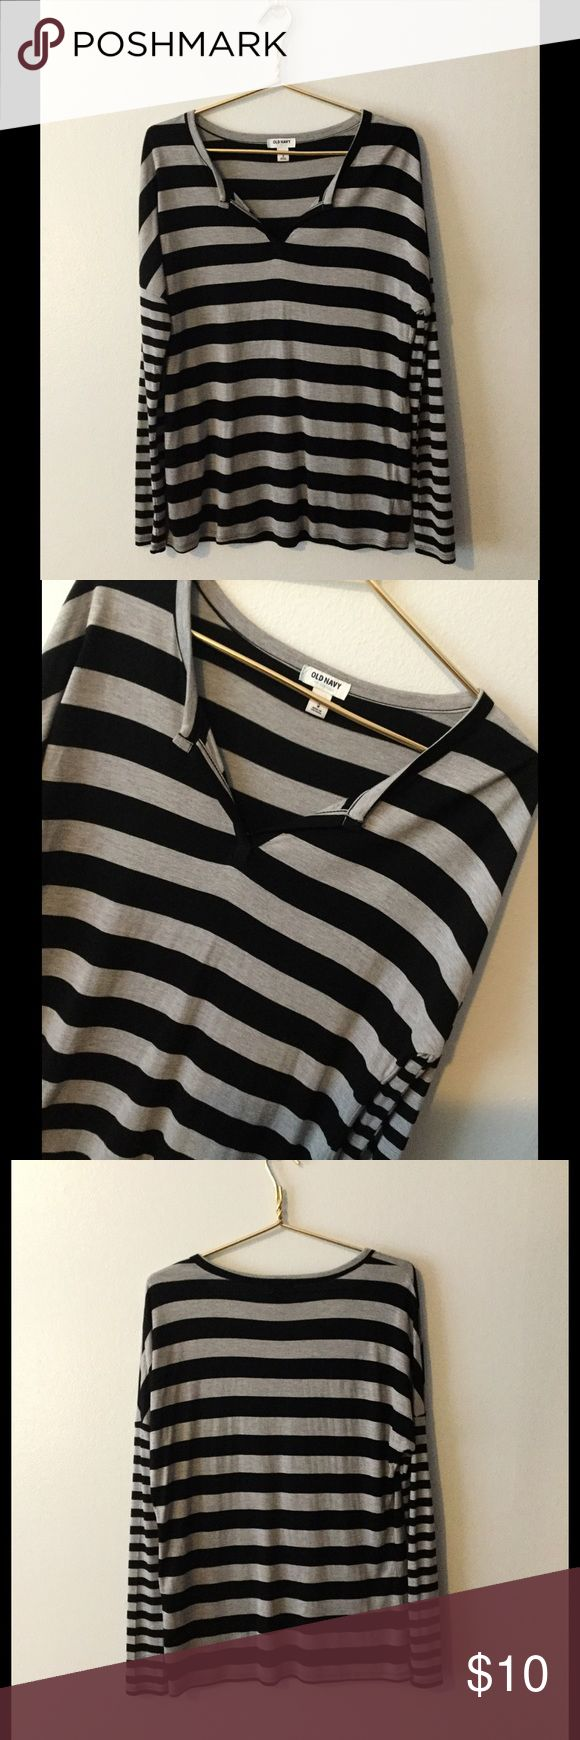 Old Navy women's top Long sleeve gray and black striped top. Looks brand new! Old Navy Tops Blouses